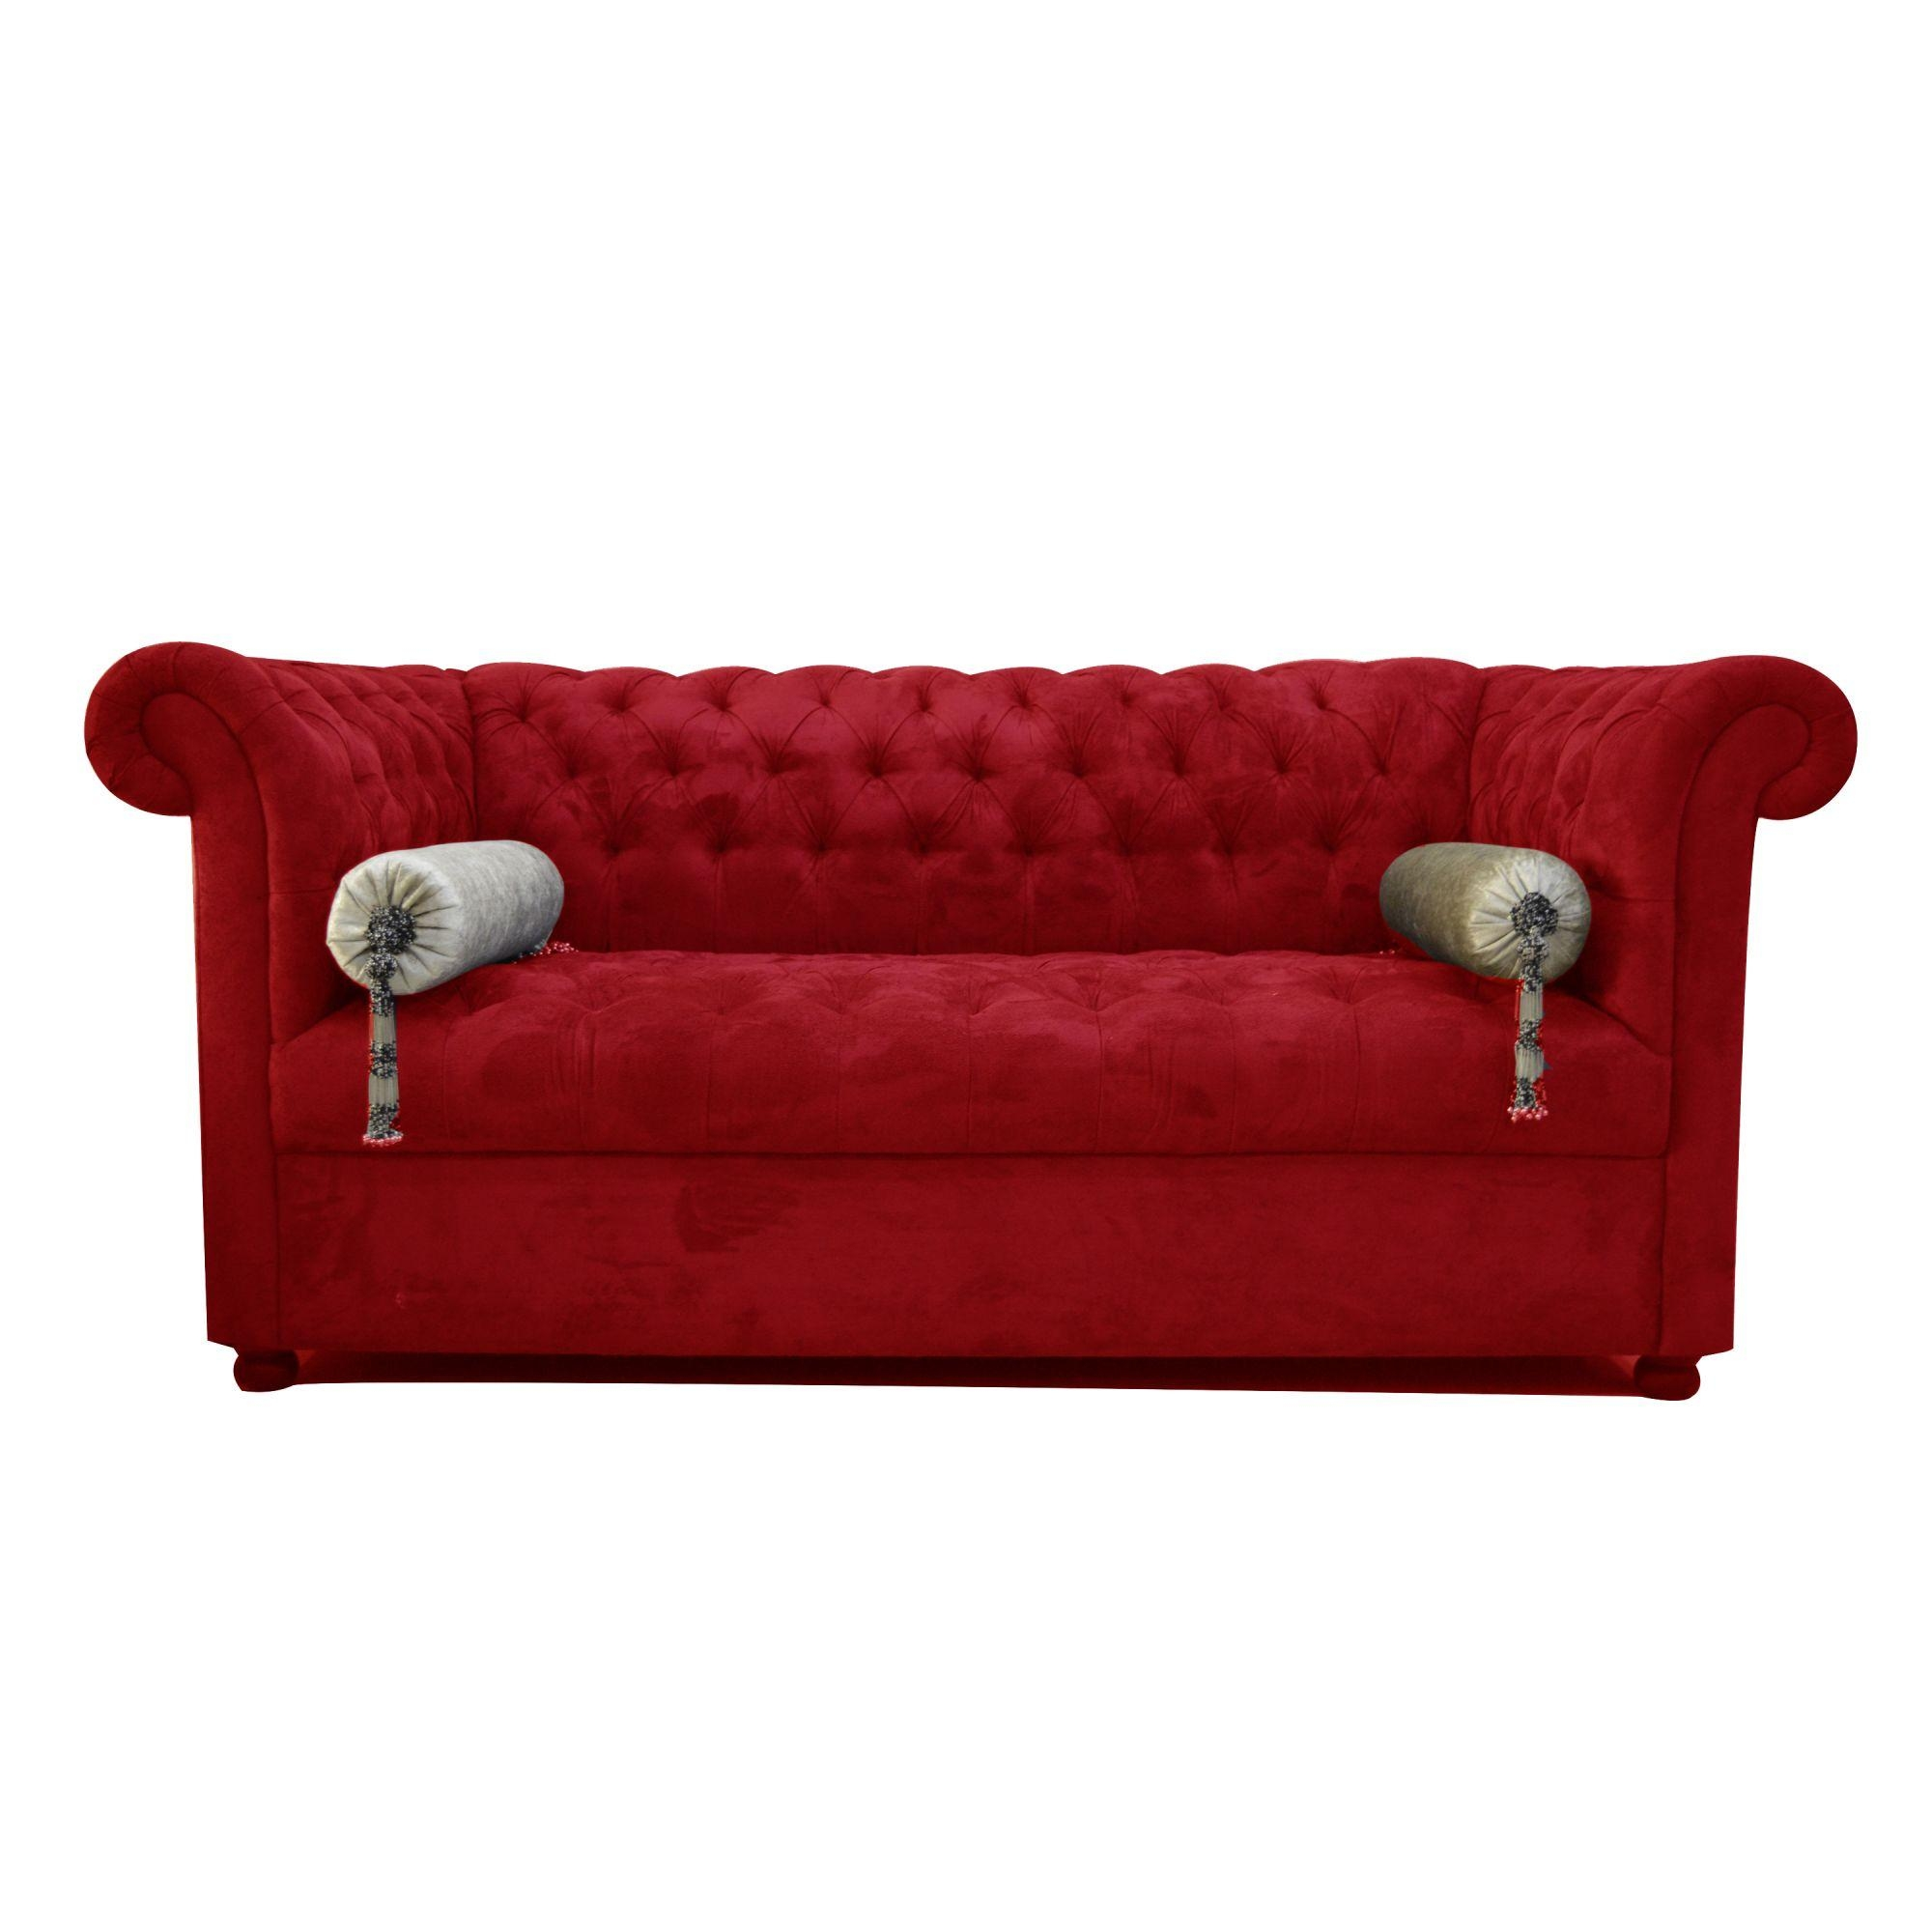 Chesterfield Sofa Bench (Cherry Red) Throughout Red Chesterfield Sofas (View 9 of 20)